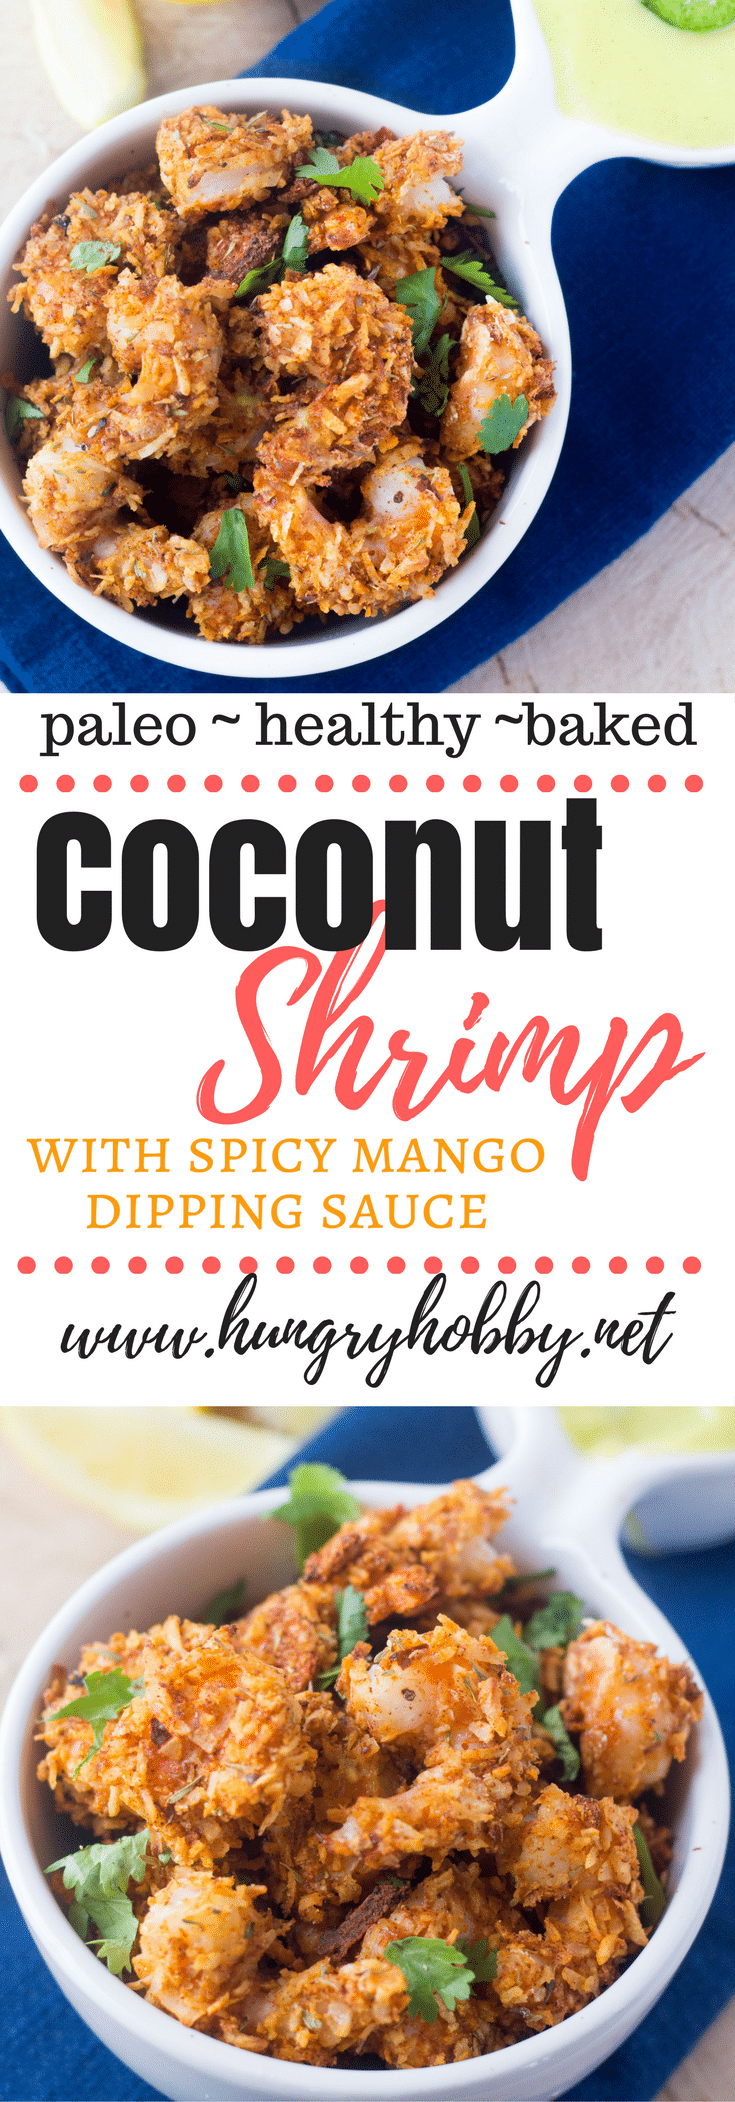 Baked Coconut Shrimp made from juicy shrimp that are coated with flavorful seasonings & coconut flakes then baked to a golden crispy perfection in less than 10 minutes. Paleo Friendly